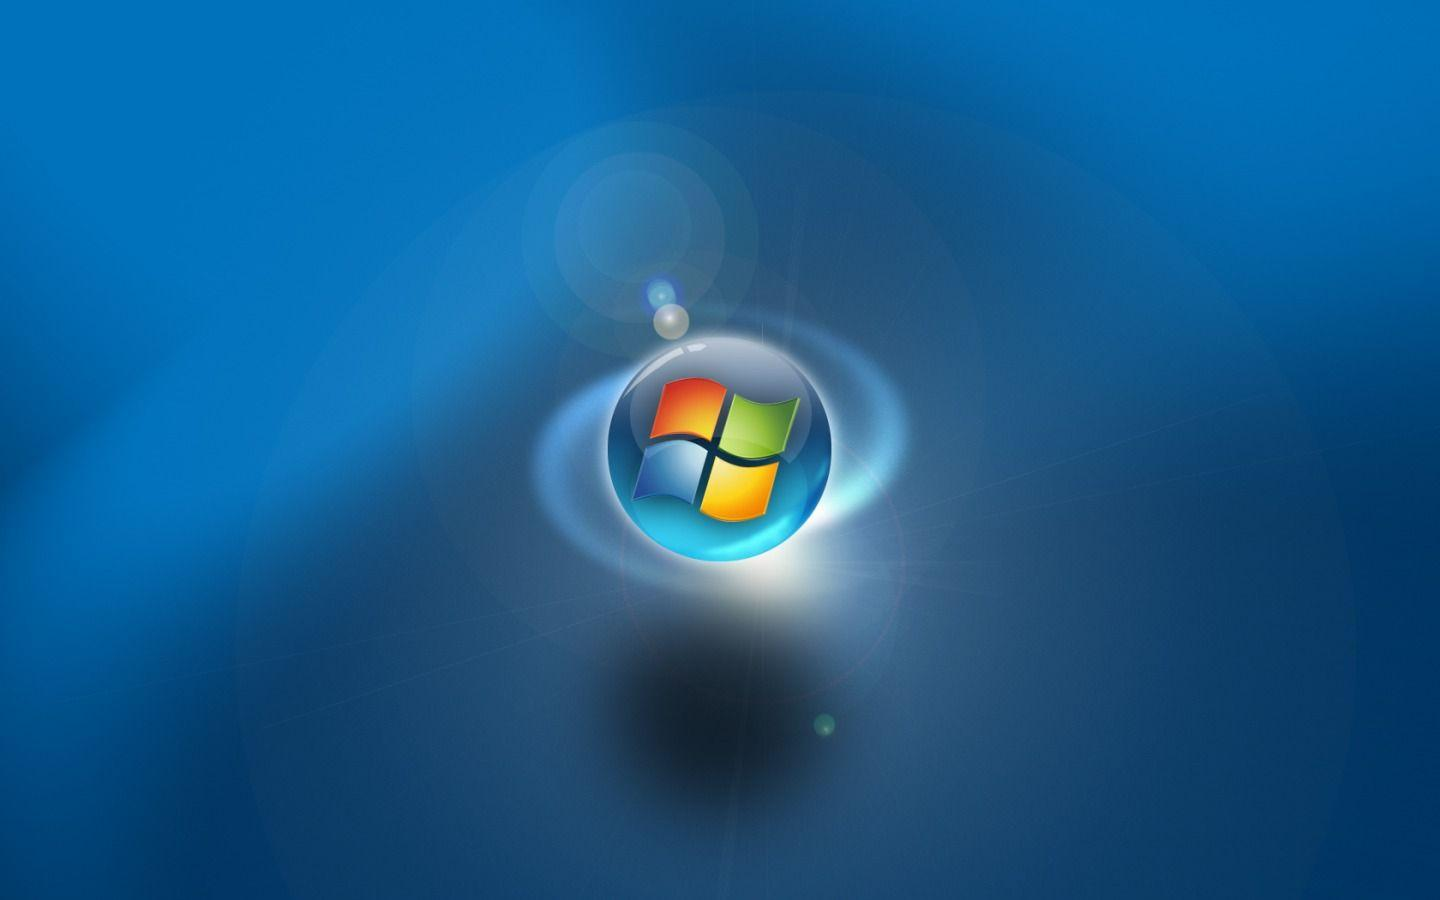 microsoft windows wallpapers by gifteddeviant - photo #29